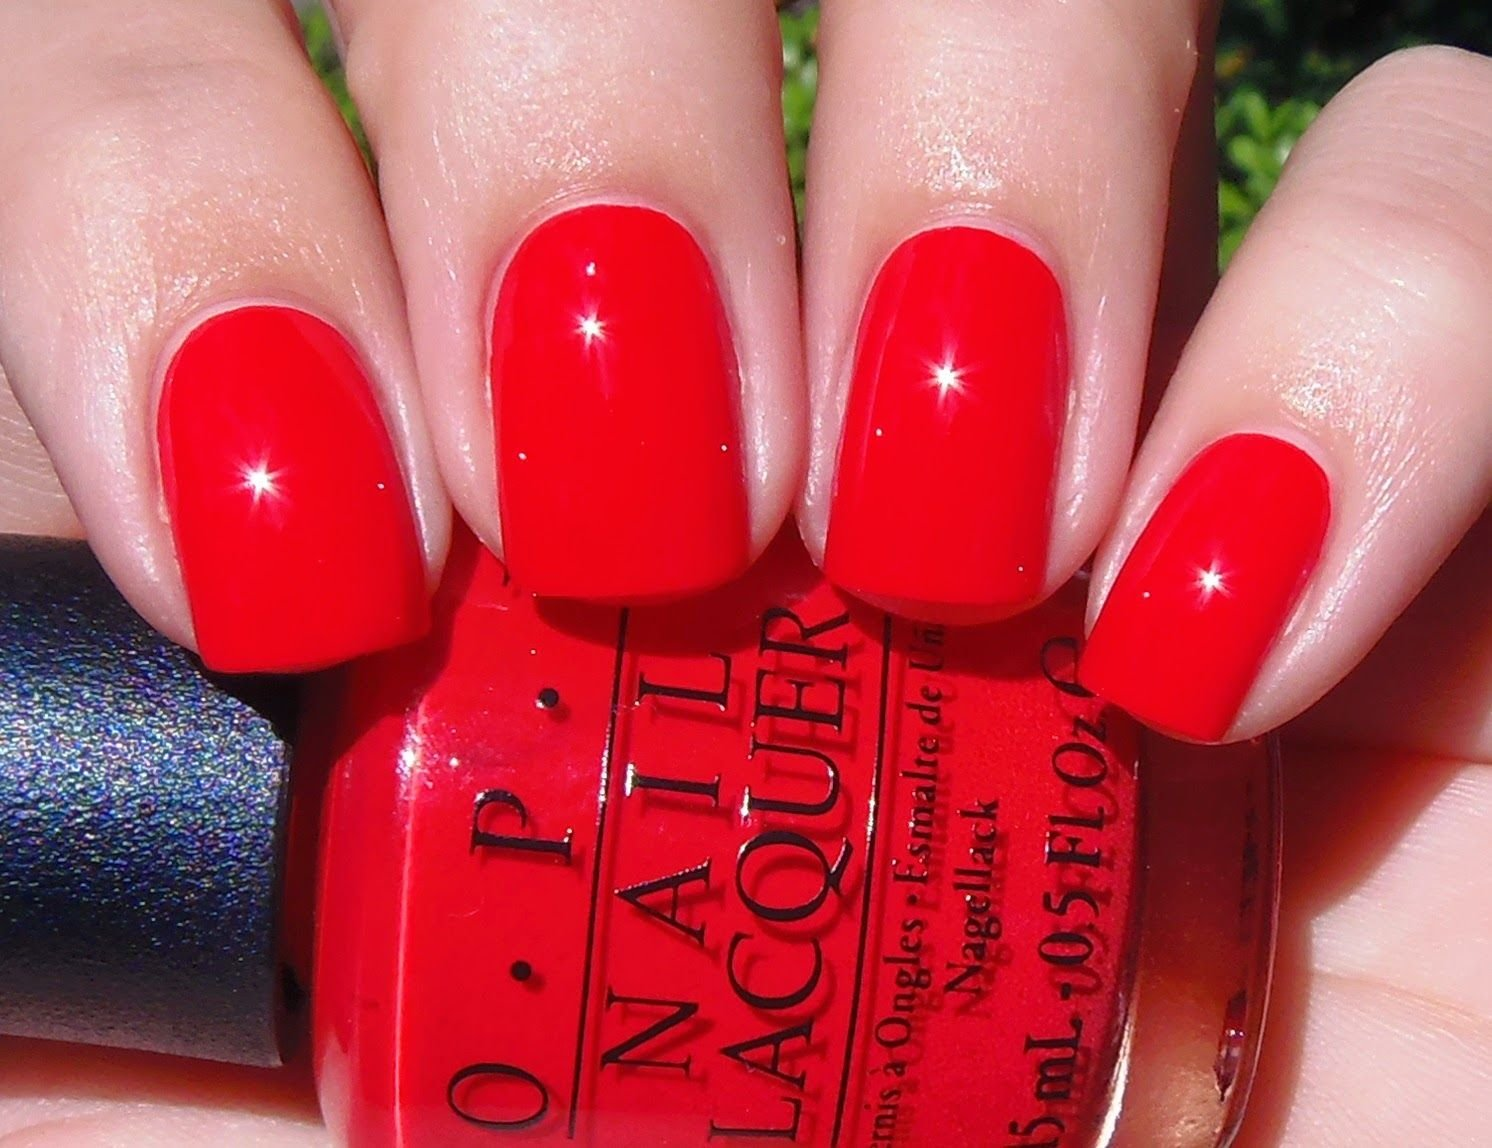 Make red gel nails yourself - instructions for beautiful man